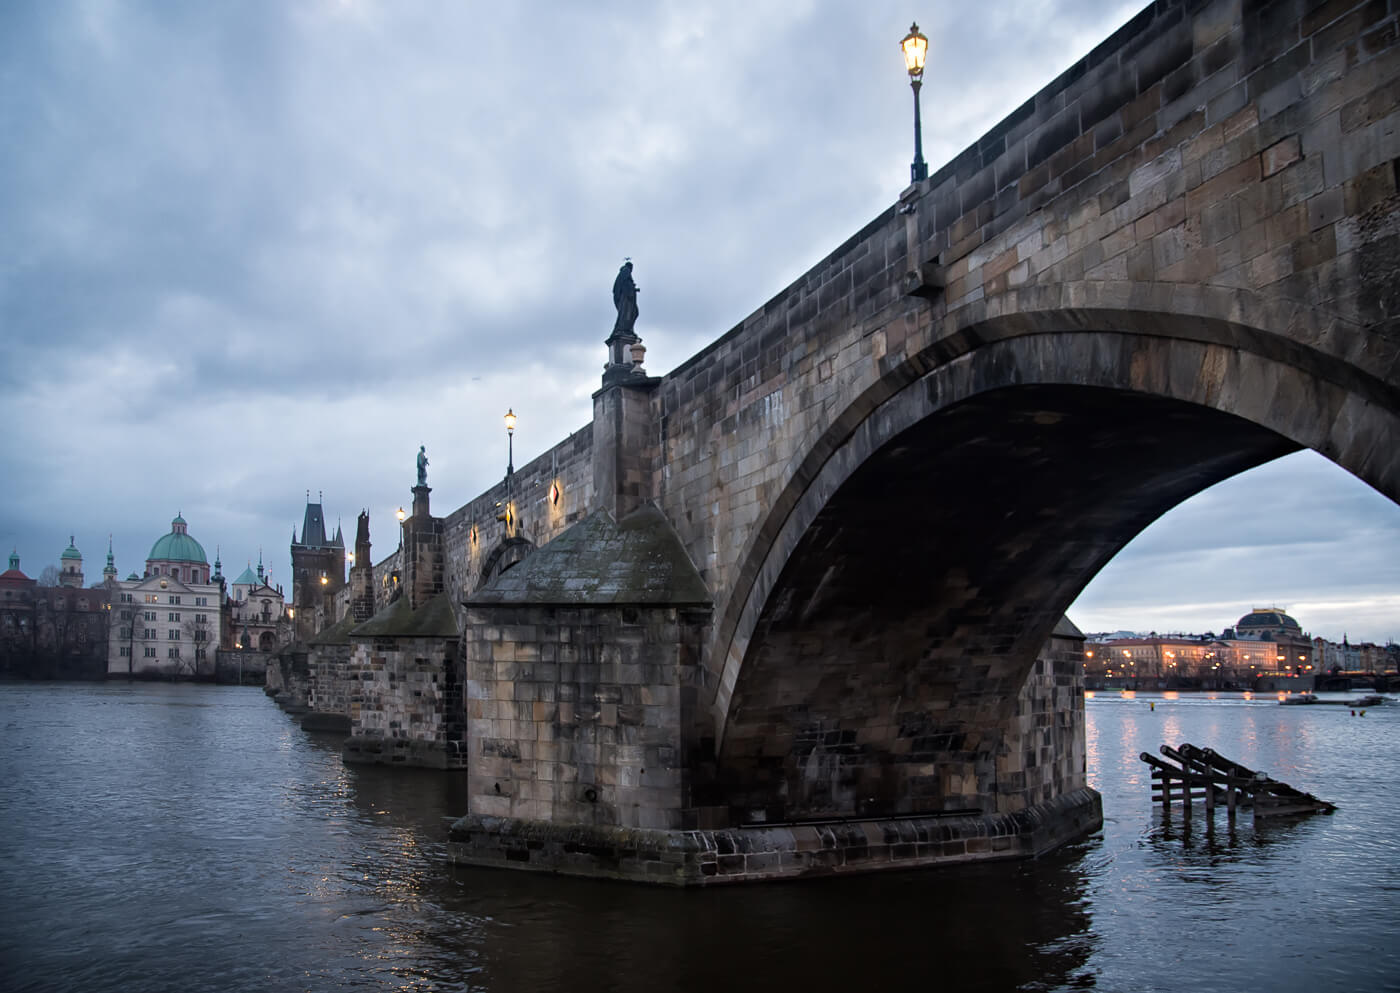 Charles Bridge over the Vltava river, Prague - Photograph by Zdenek Sindelar / CuriousZed